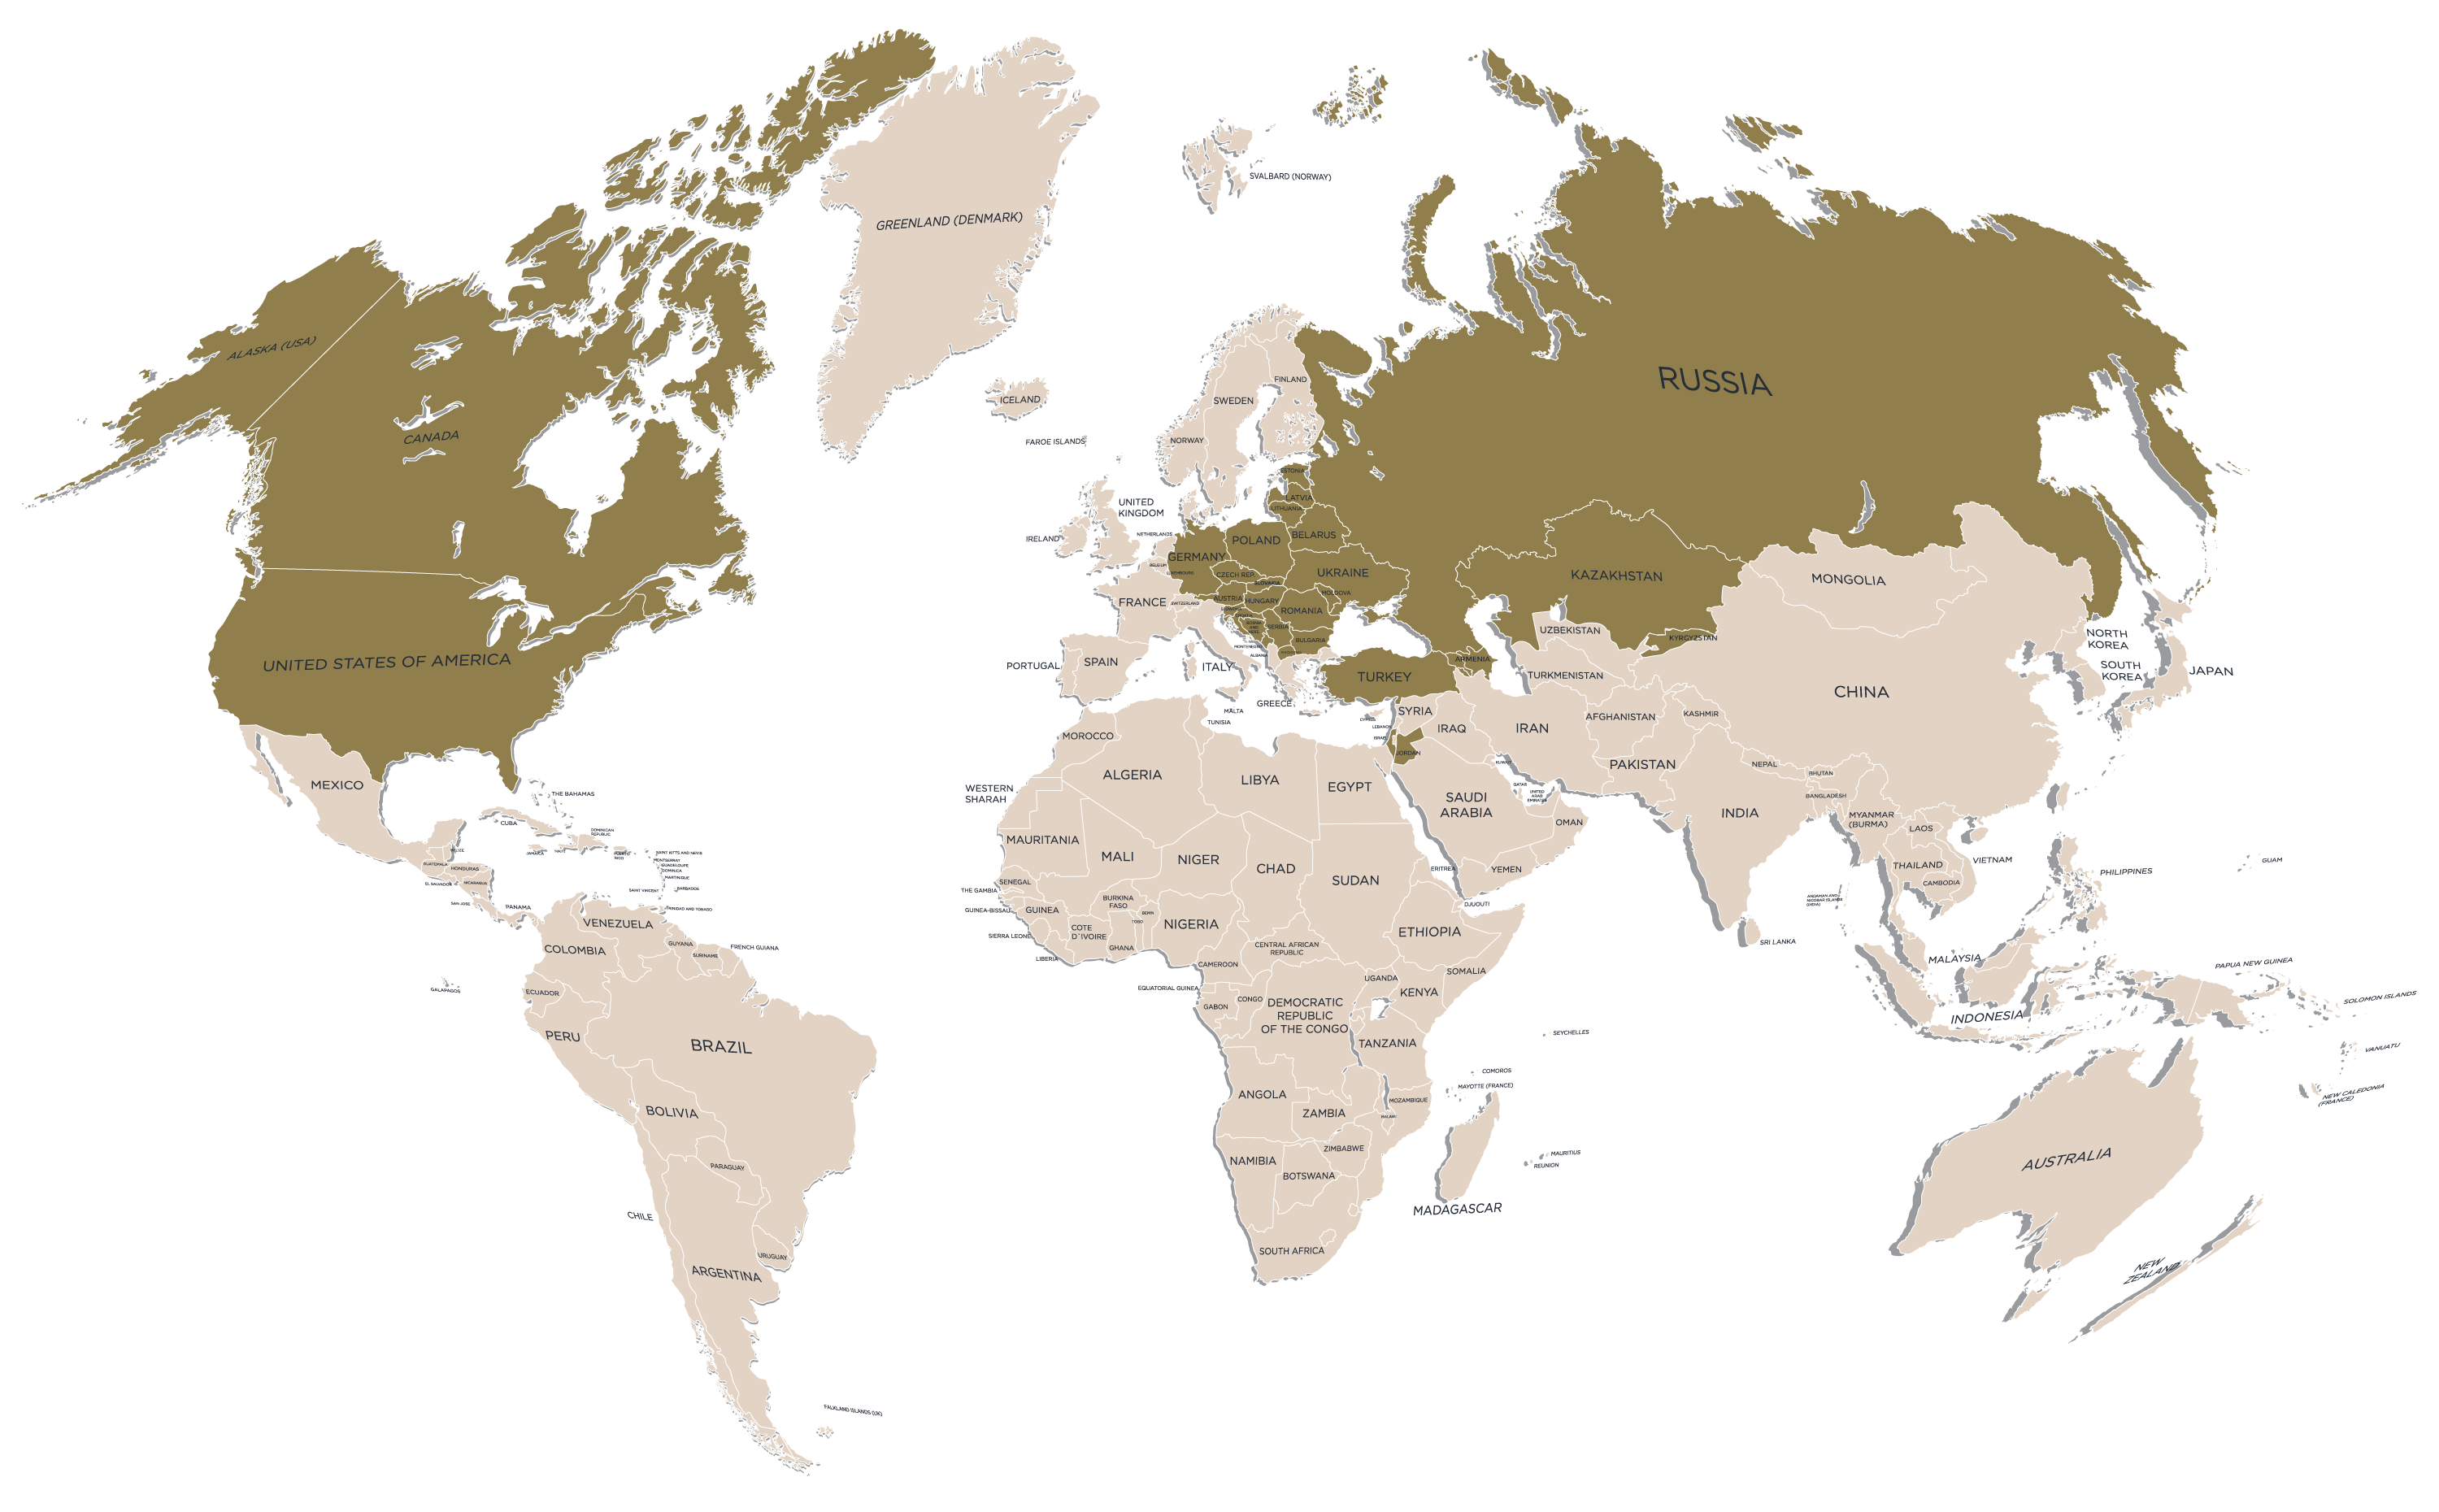 Family Tree Ltd. - map of countries we research in